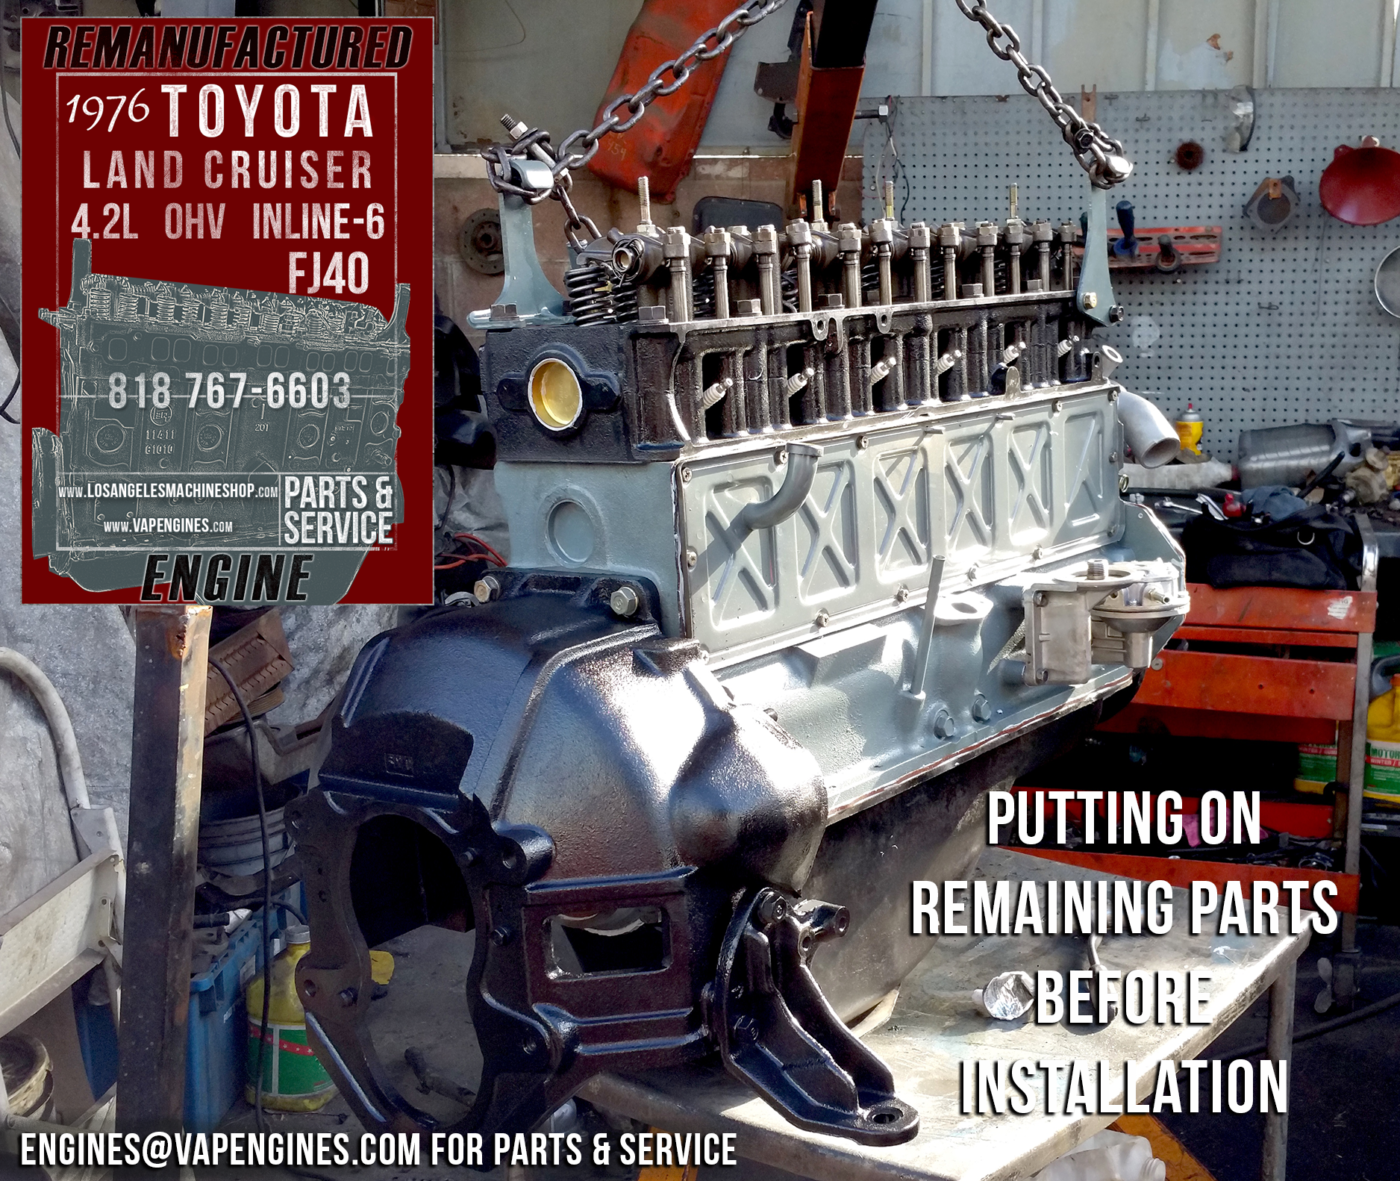 76 Toyota Land Cruiser FJ40 4.2 Engine Rebuilding ...